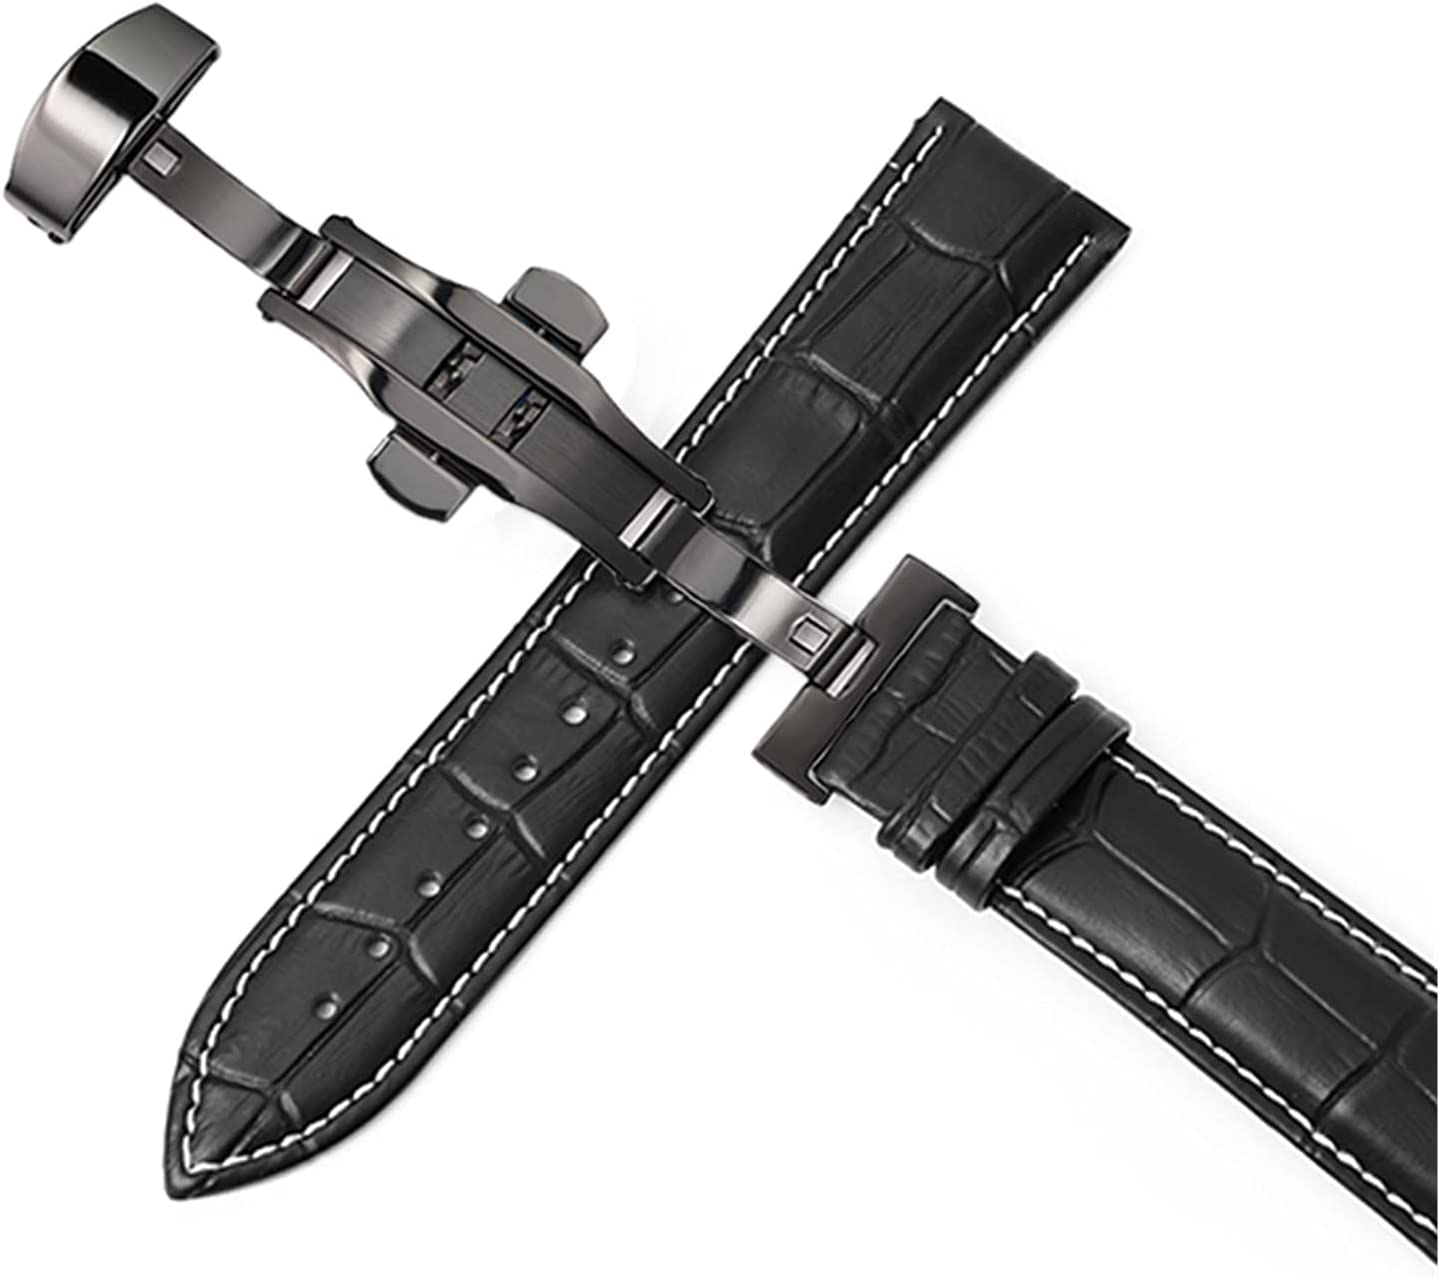 Max 73% OFF Shengsheng Wtaikui Stor Leather Automatic But Double-Press Be super welcome Strap